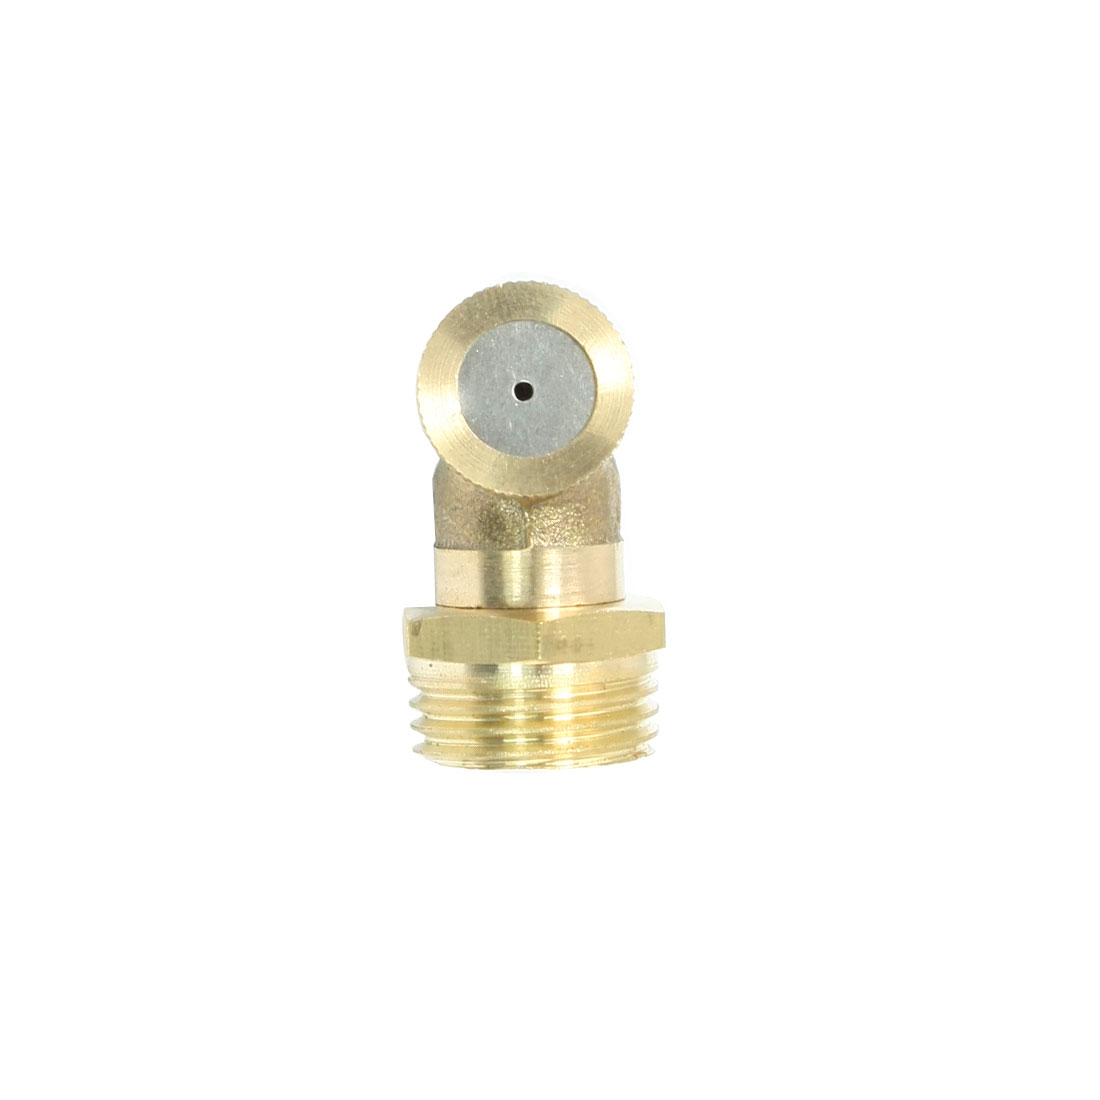 Gardening 20mm Male Thread Dia Irrigation Spray Nozzle Brass Tone